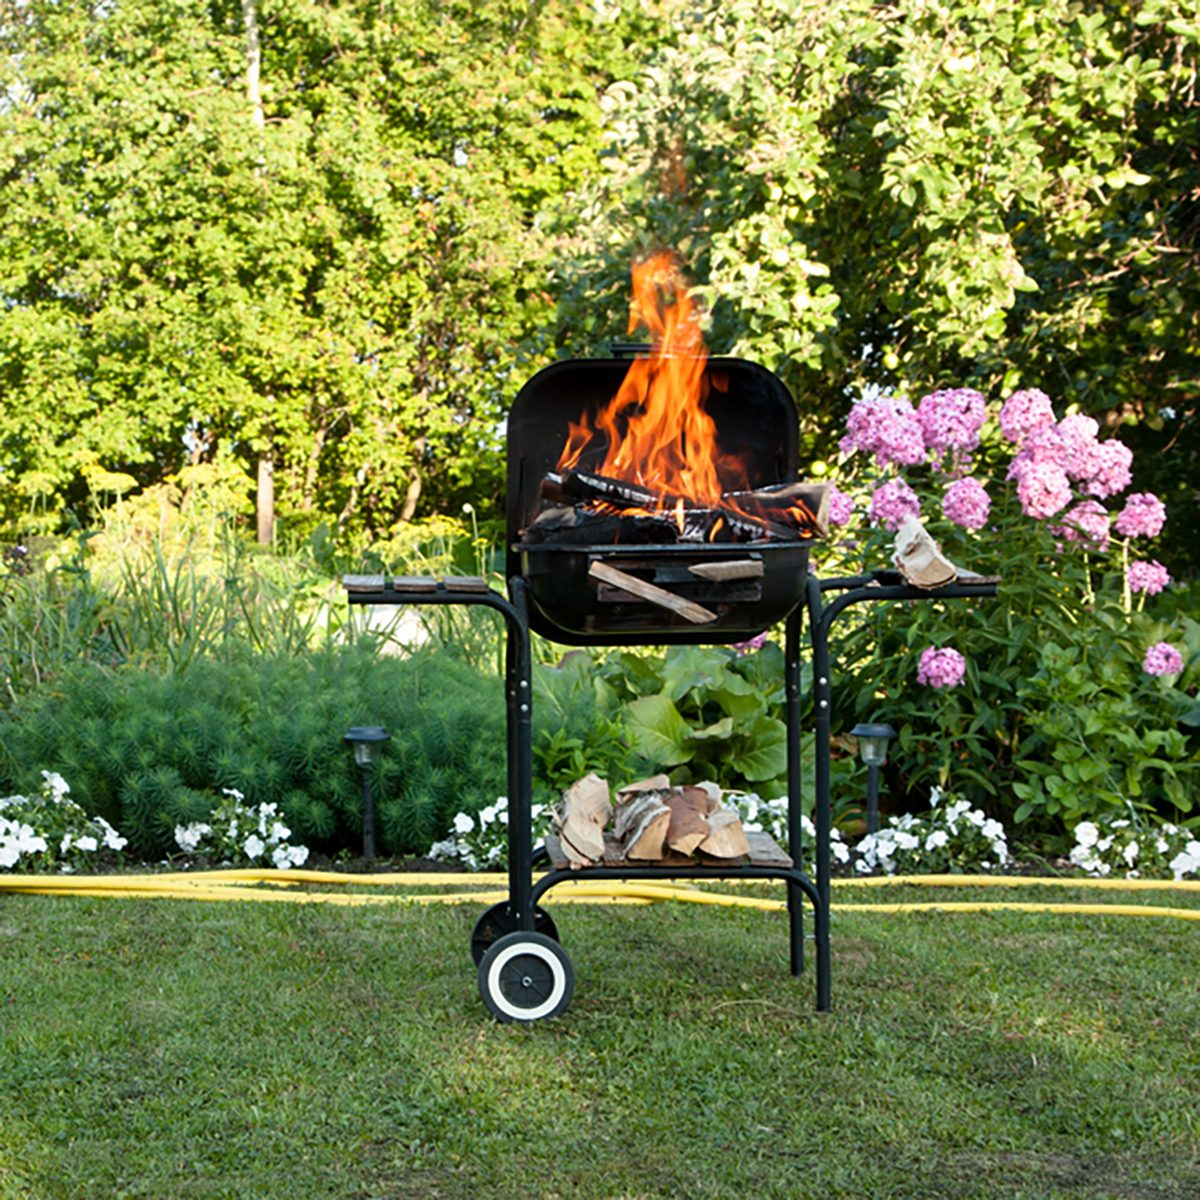 10 Major Grilling Safety Mistakes You Might Be Making Taste Of Home